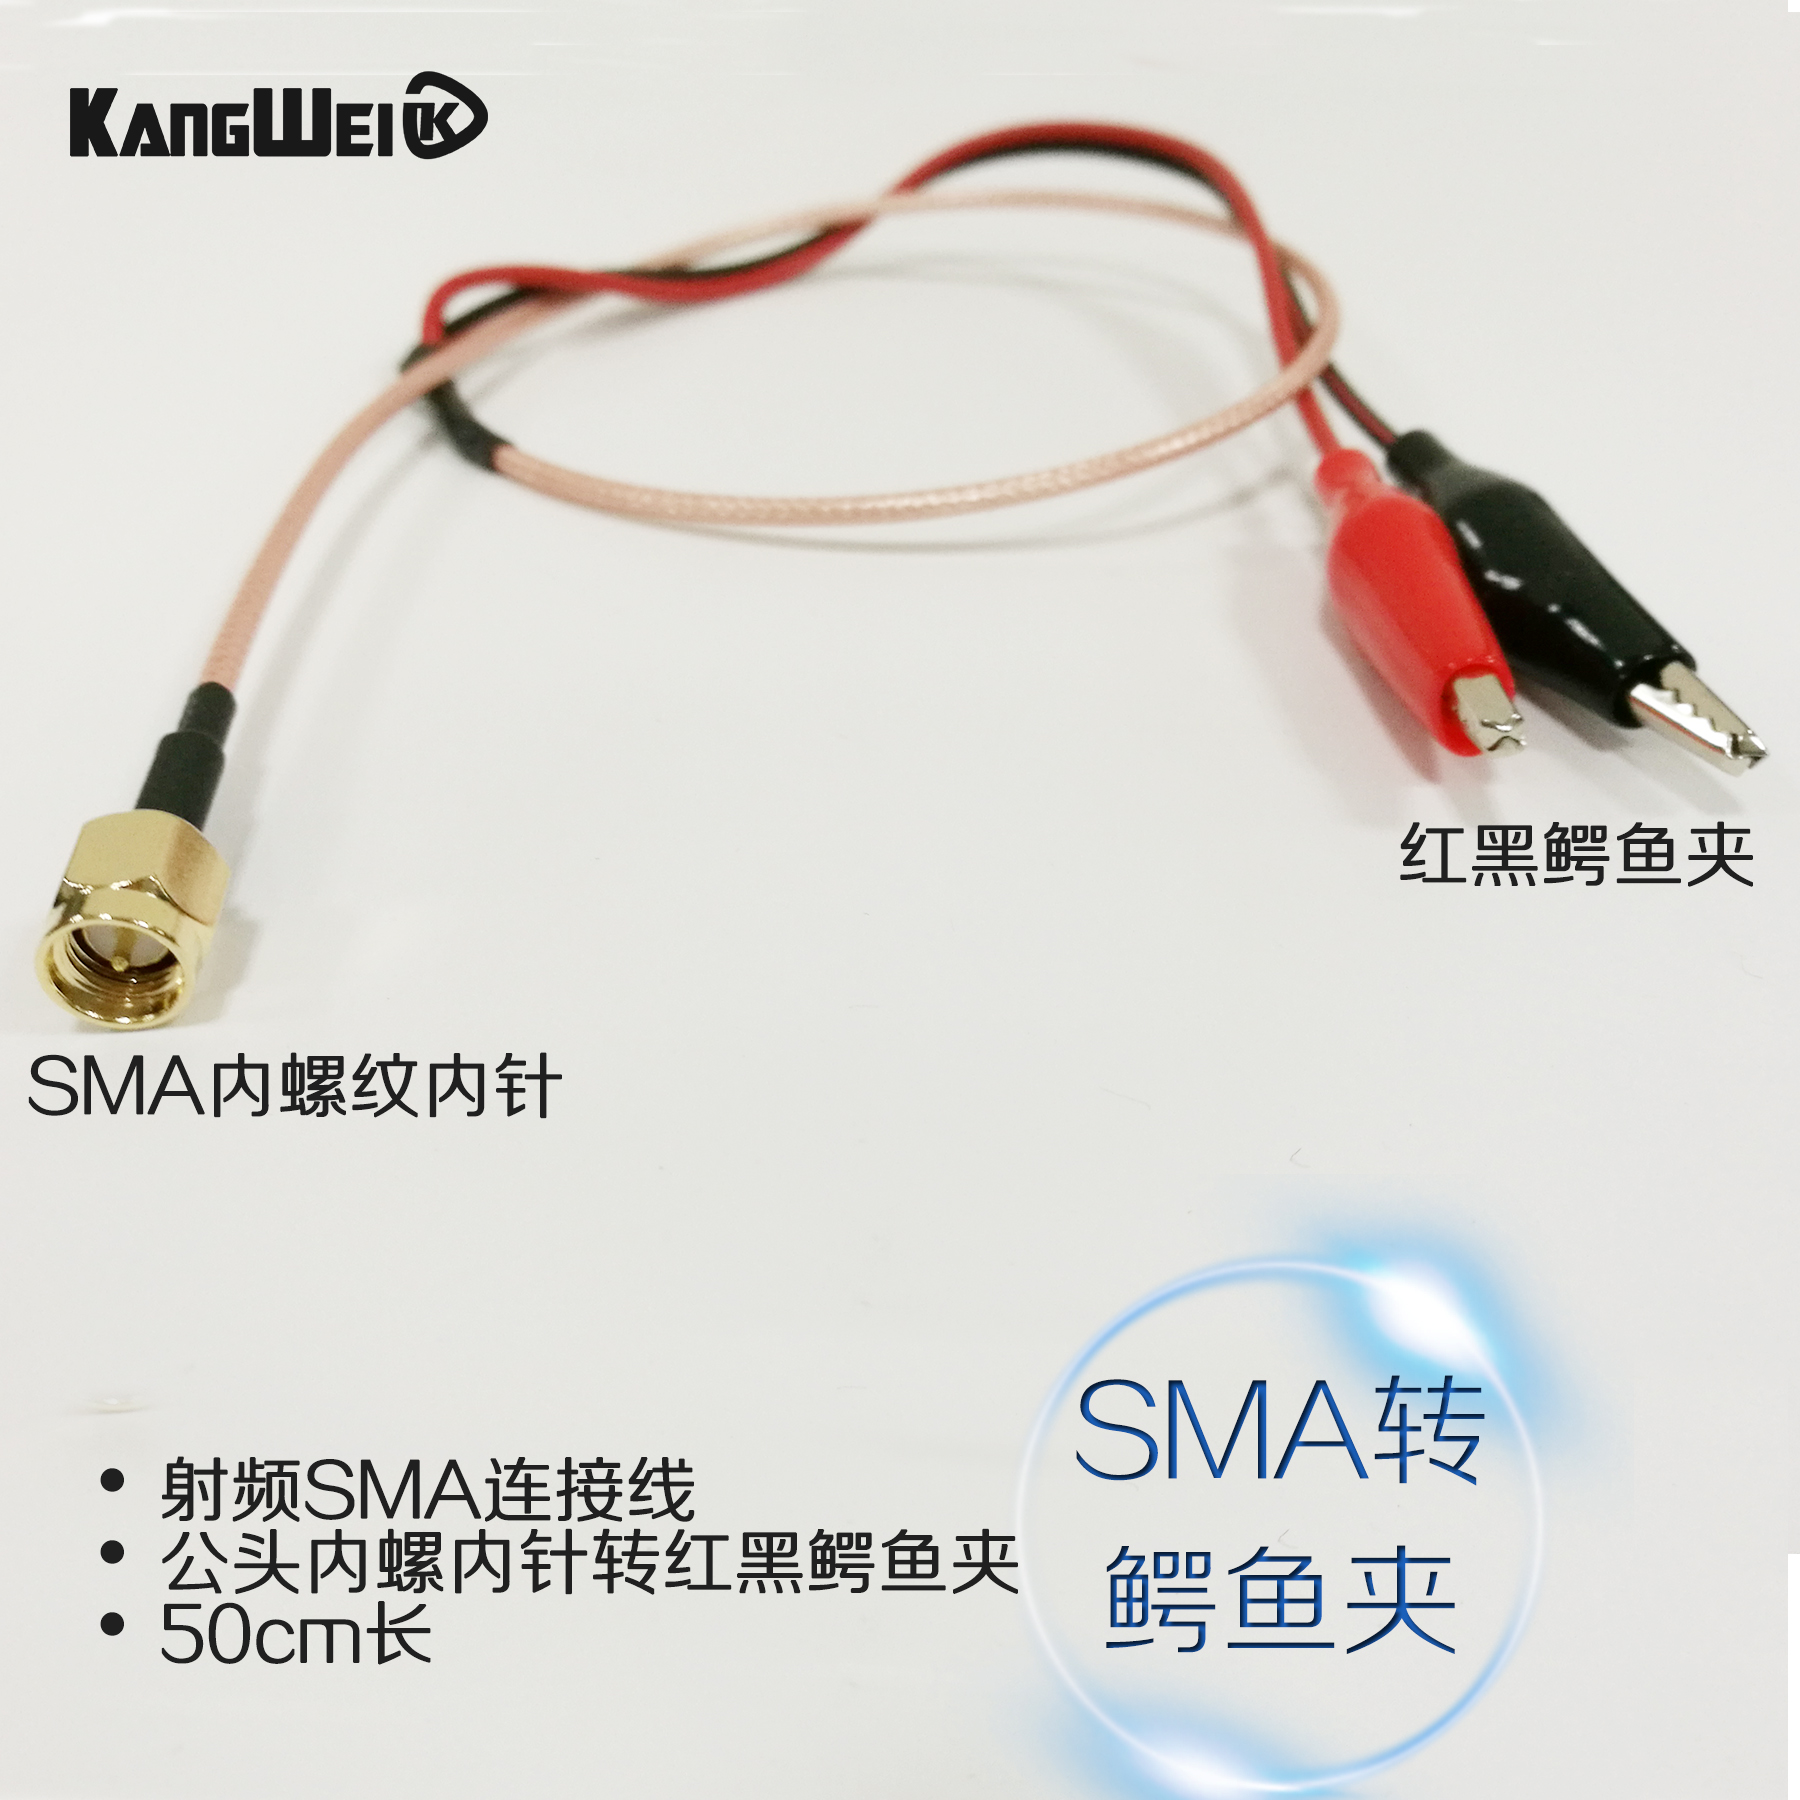 Radio Frequency SMA Connection Thread, Inner Thread, Inner Needle, Red and Black Crocodile Clip, Test Line, RG316 Line, 50cm na4910 heavy duty needle roller bearing entity needle bearing with inner ring 4524910 size 50 72 22